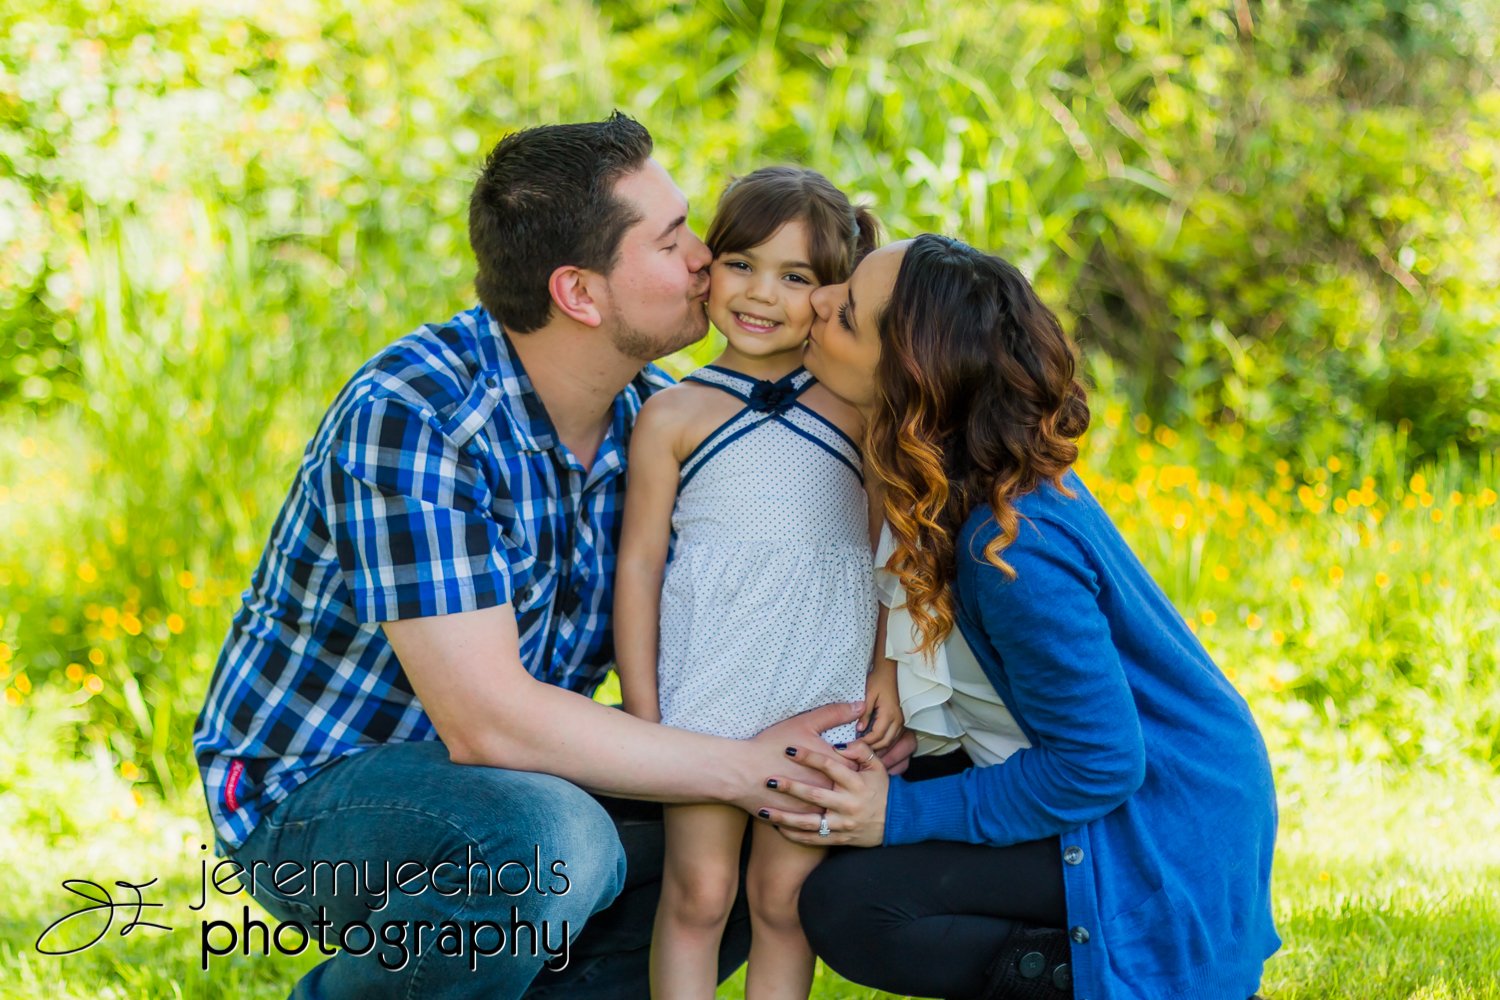 Corey_Carley_Normandy_Park_Cove_Engagement_Photography-165.jpg